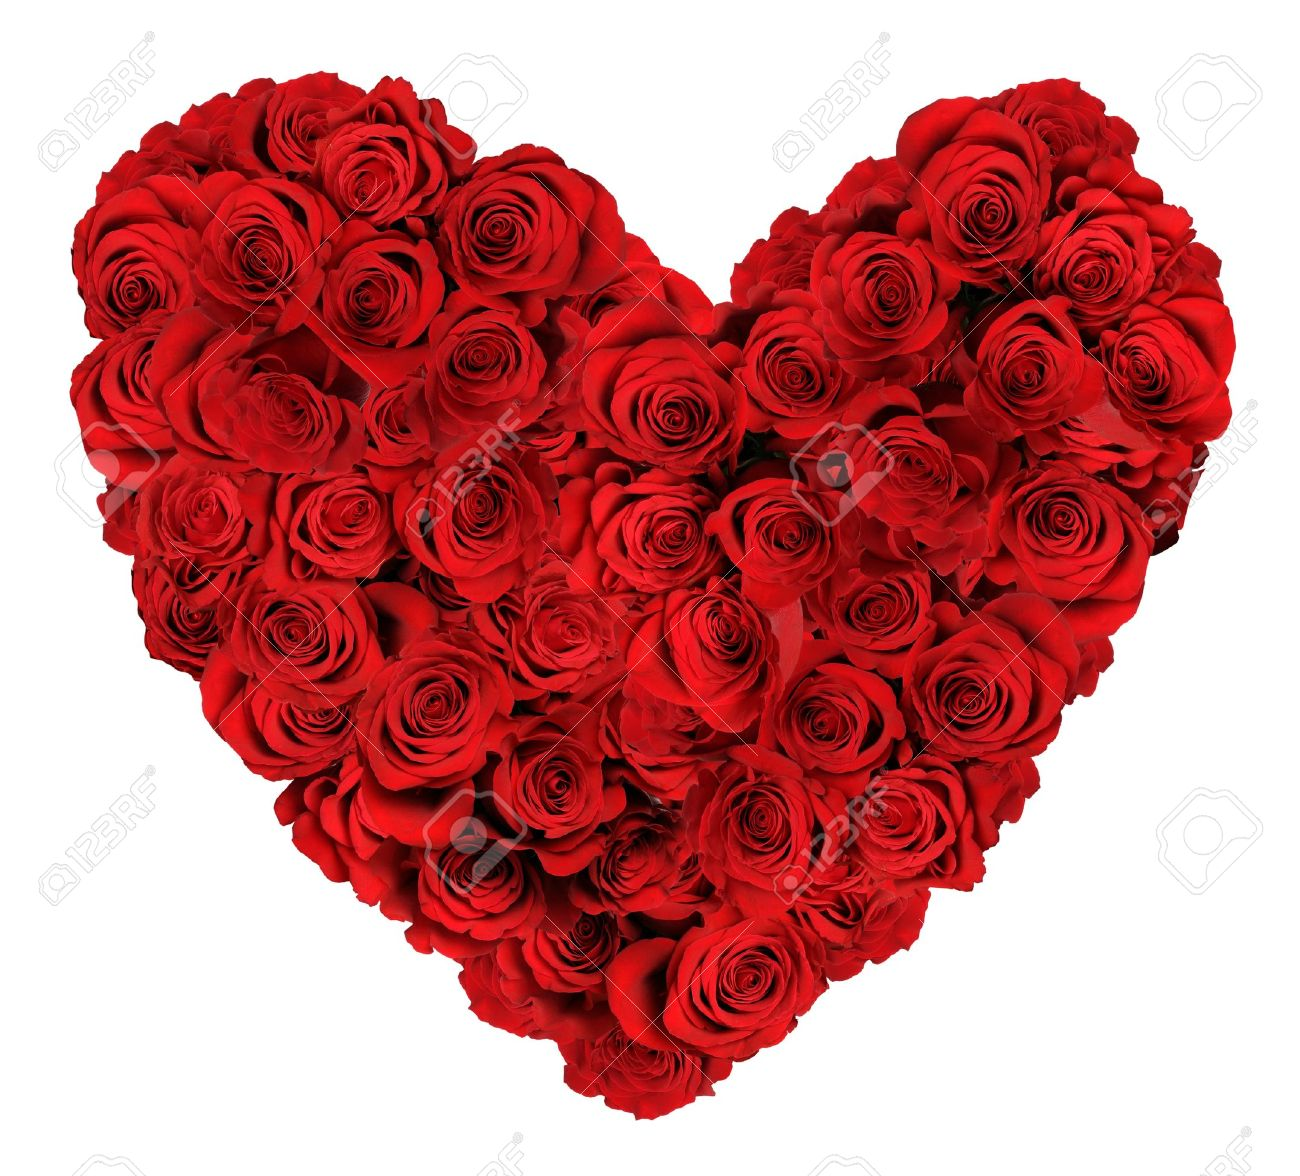 Image De Rose Heart Shaped Bouquet Of Red Roses Isolated Over White Background